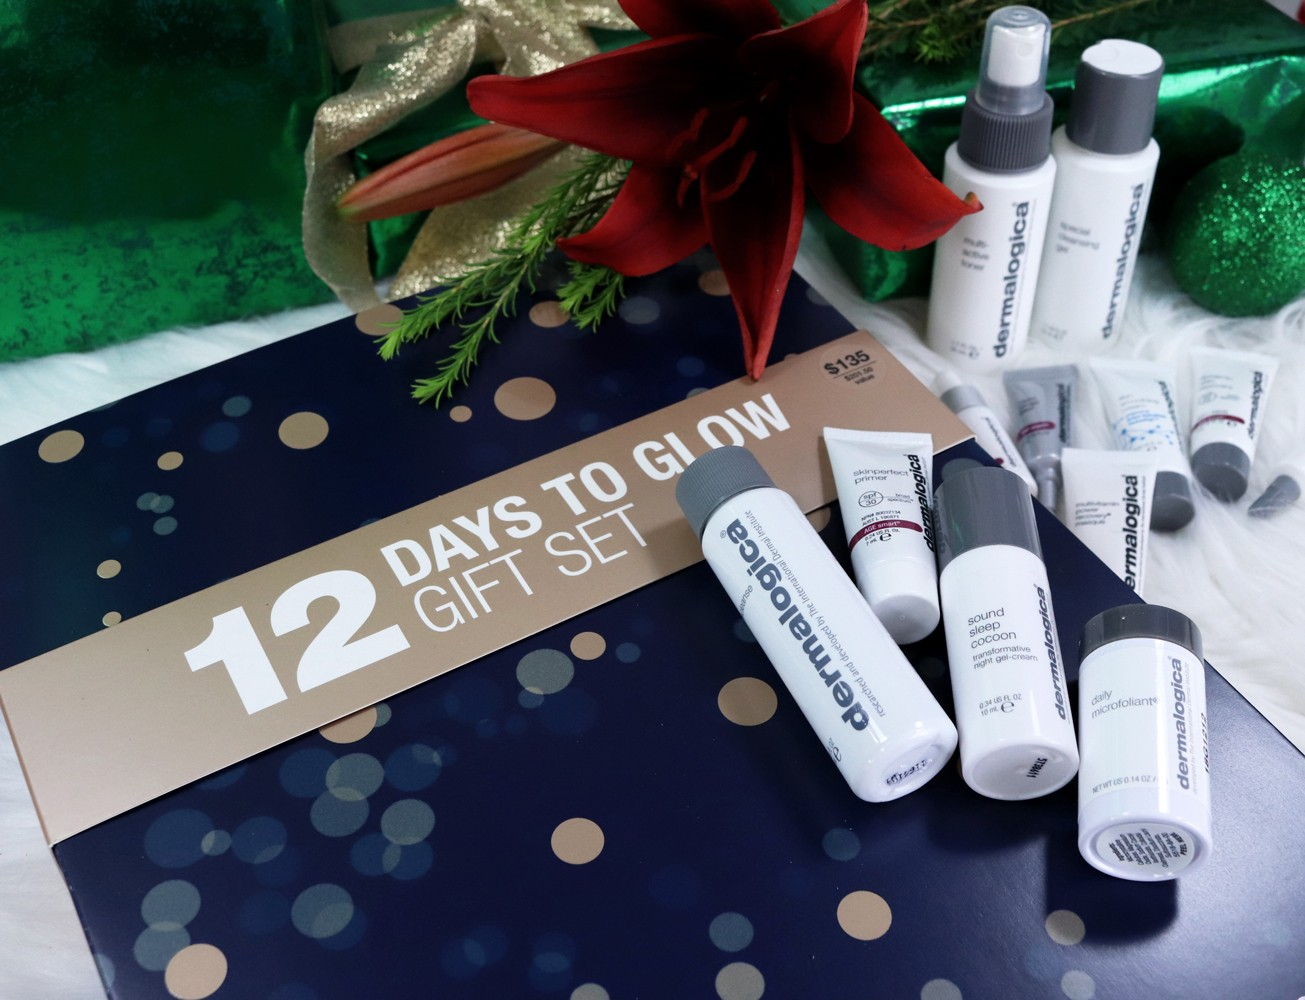 Cruelty Free Holiday Gift Guide - Dermalogica 12 Days to Glow Gift Set